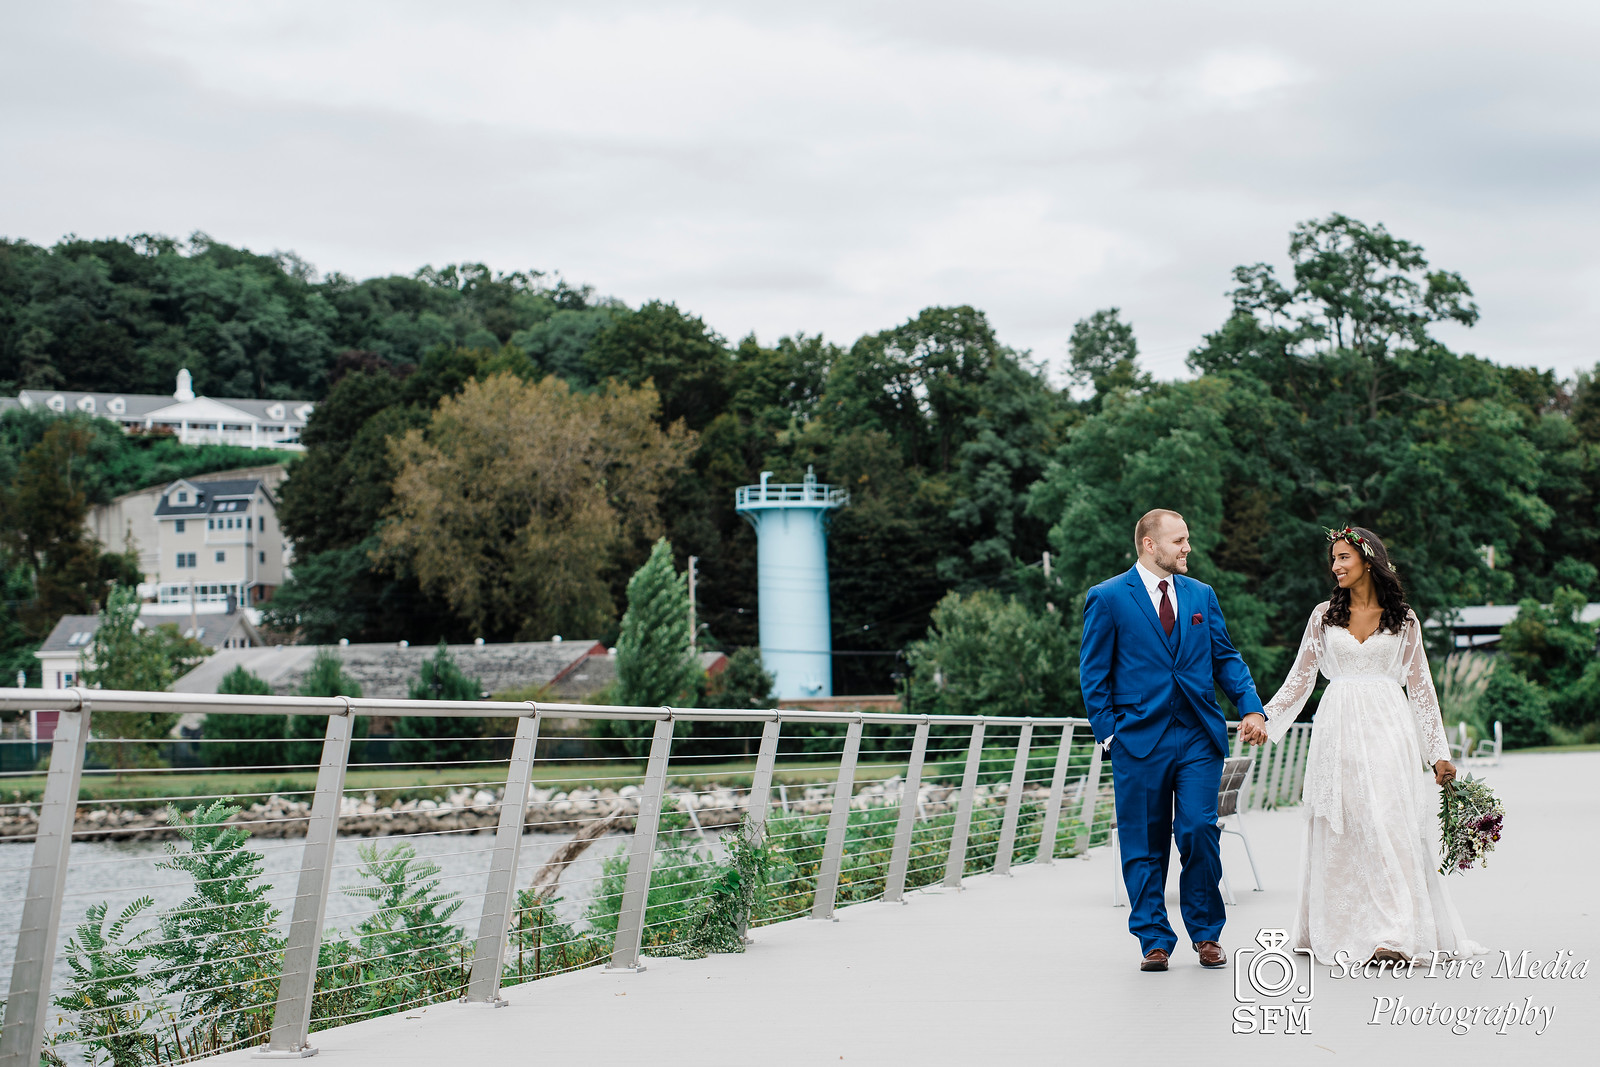 Bride and groom hold hands and walk on a pier at the Peekskill waterfront before a Hudson Valley Wedding at The Dramatic Hall in Peekskill New York